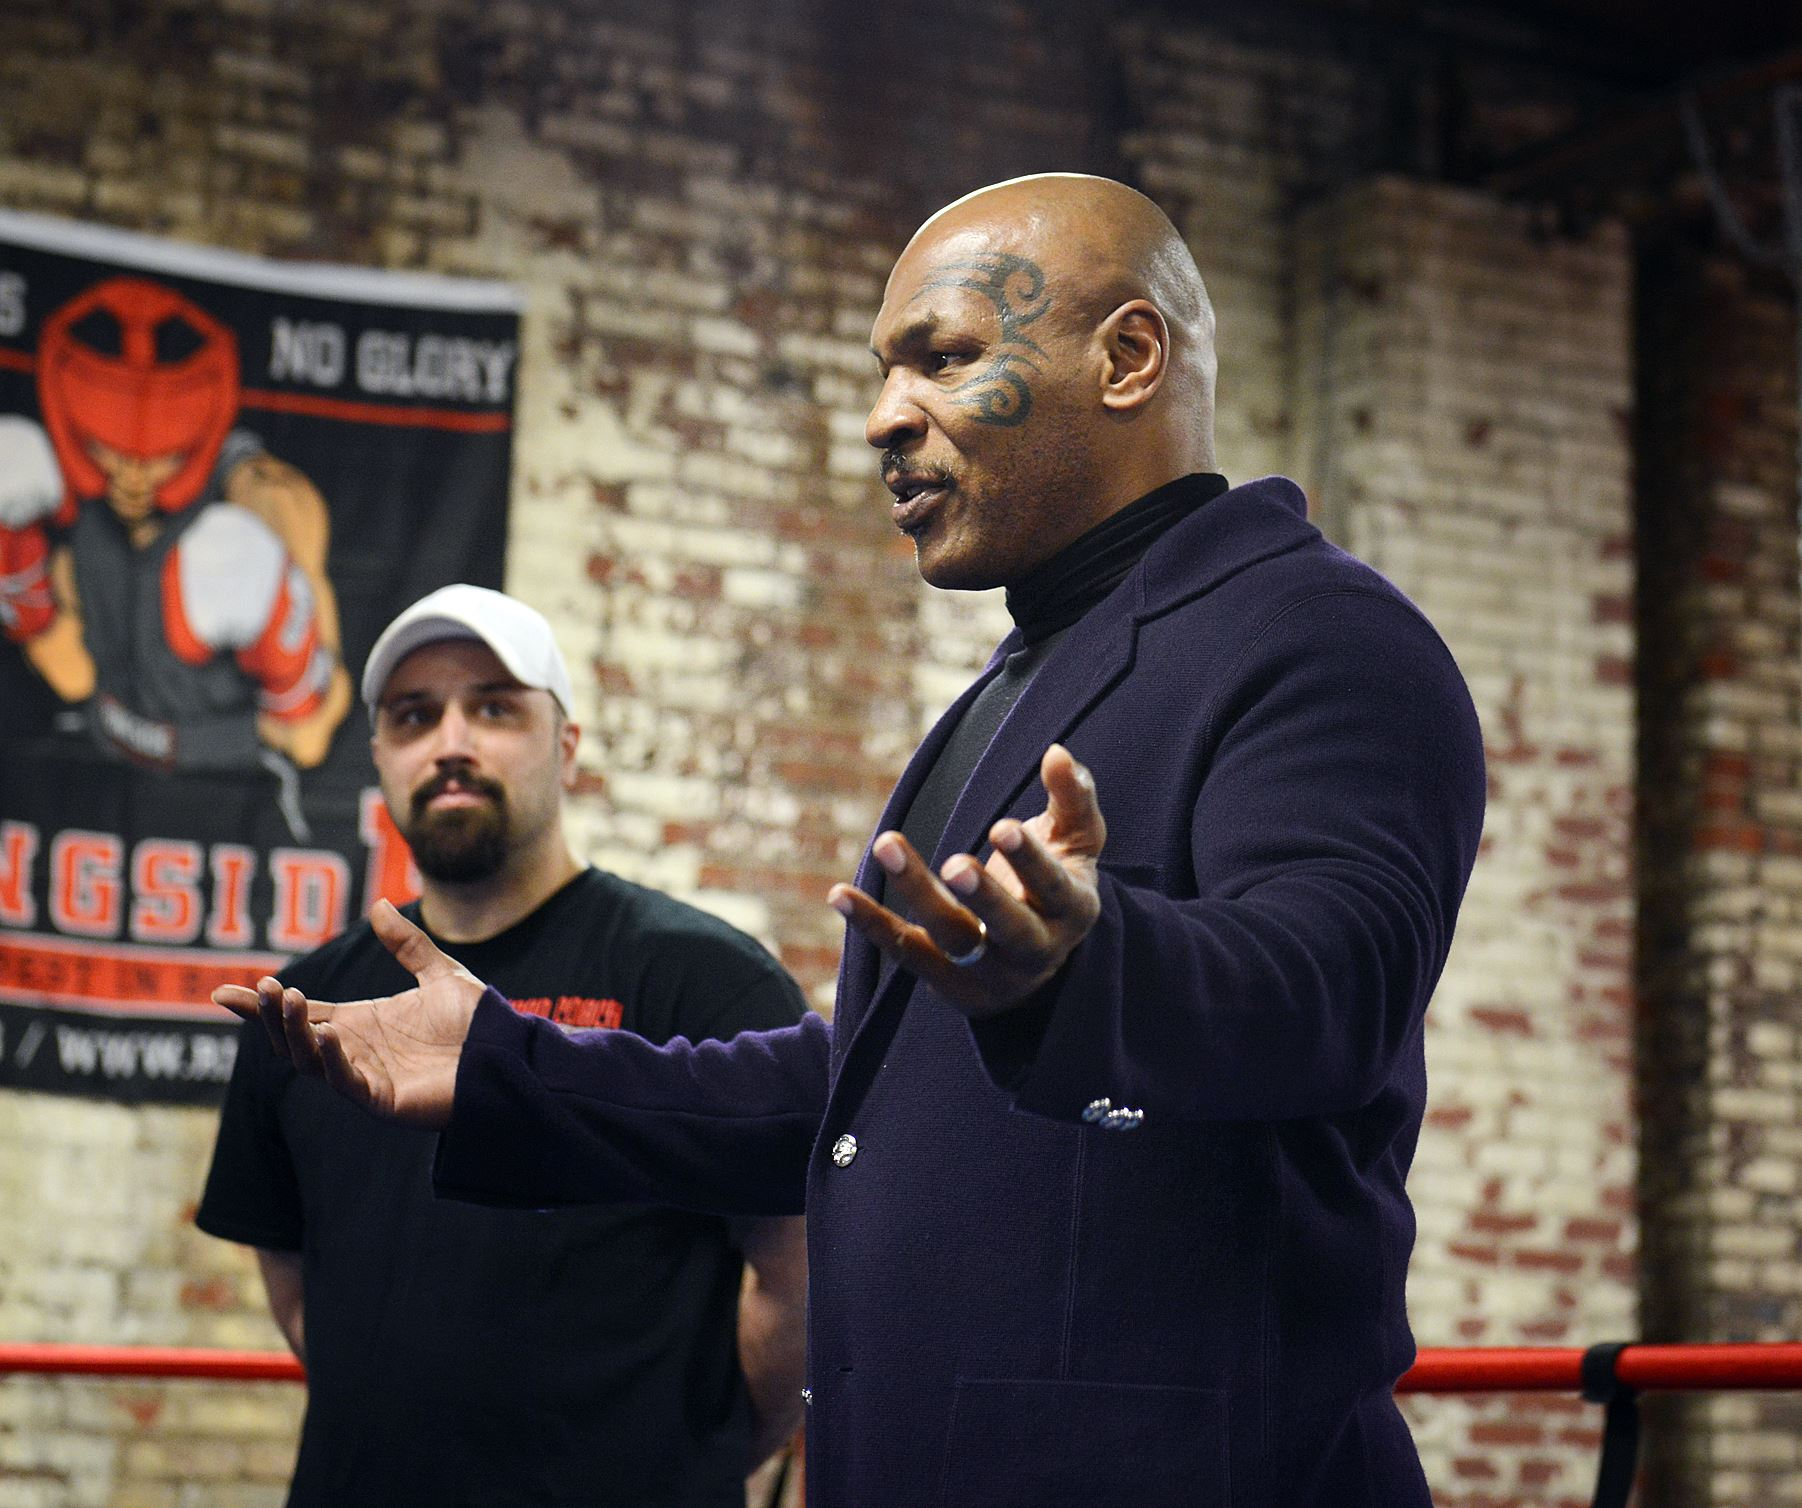 Boxing in Pittsburgh | Boxing Gyms, Clubs & Classes